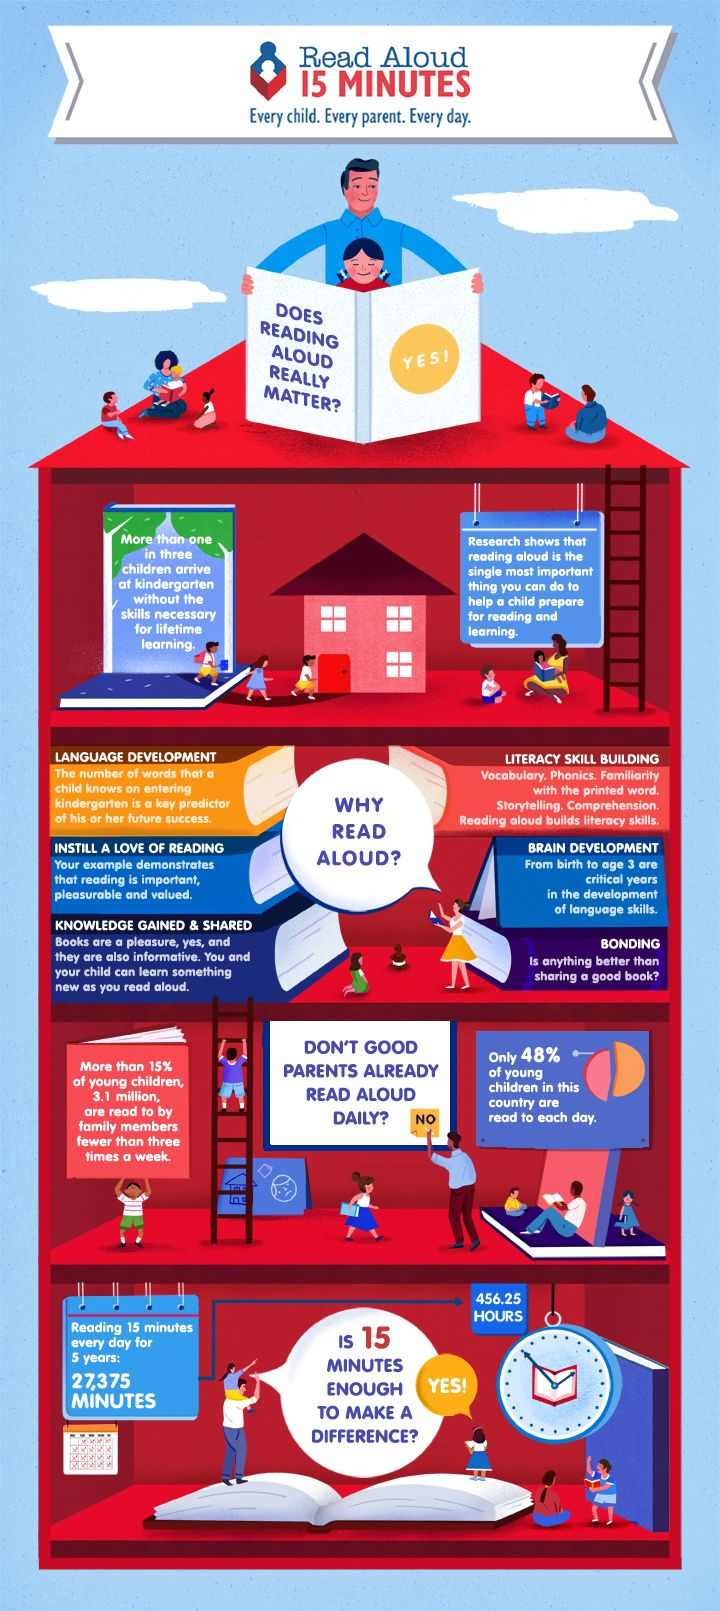 Read Aloud - Importance of Reading Aloud.  Every child. Every parent (Every caregiver) Every day.